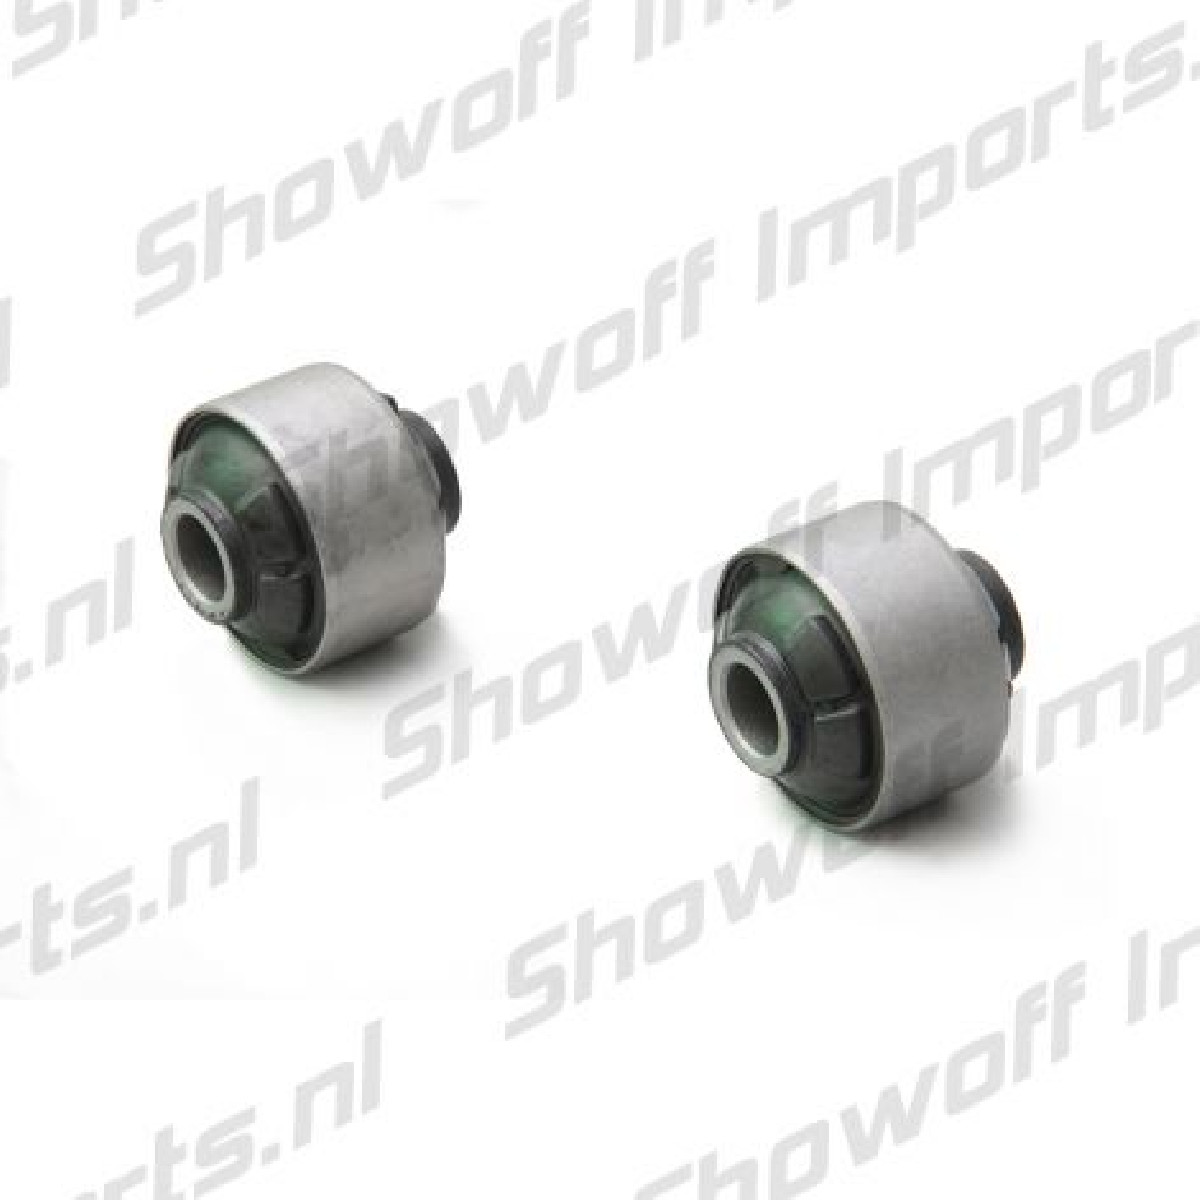 Subaru BRZ Front Lower Arm Bushing Large [MR]